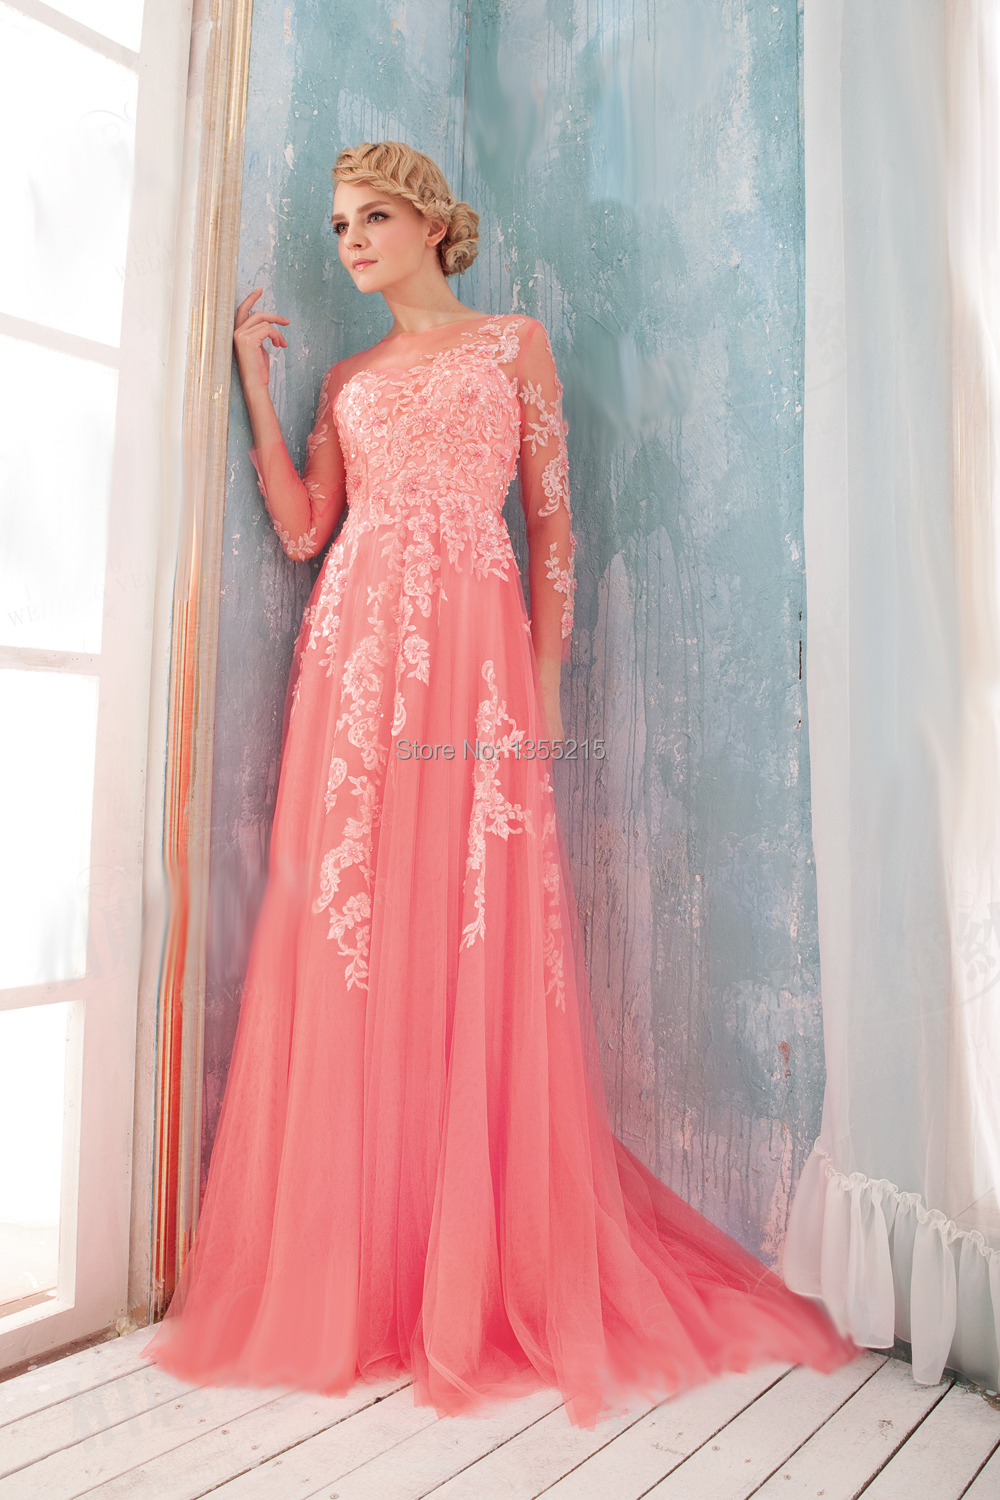 Custom long sleeve formal dresses coral prom dress elegant for Long elegant dresses for weddings